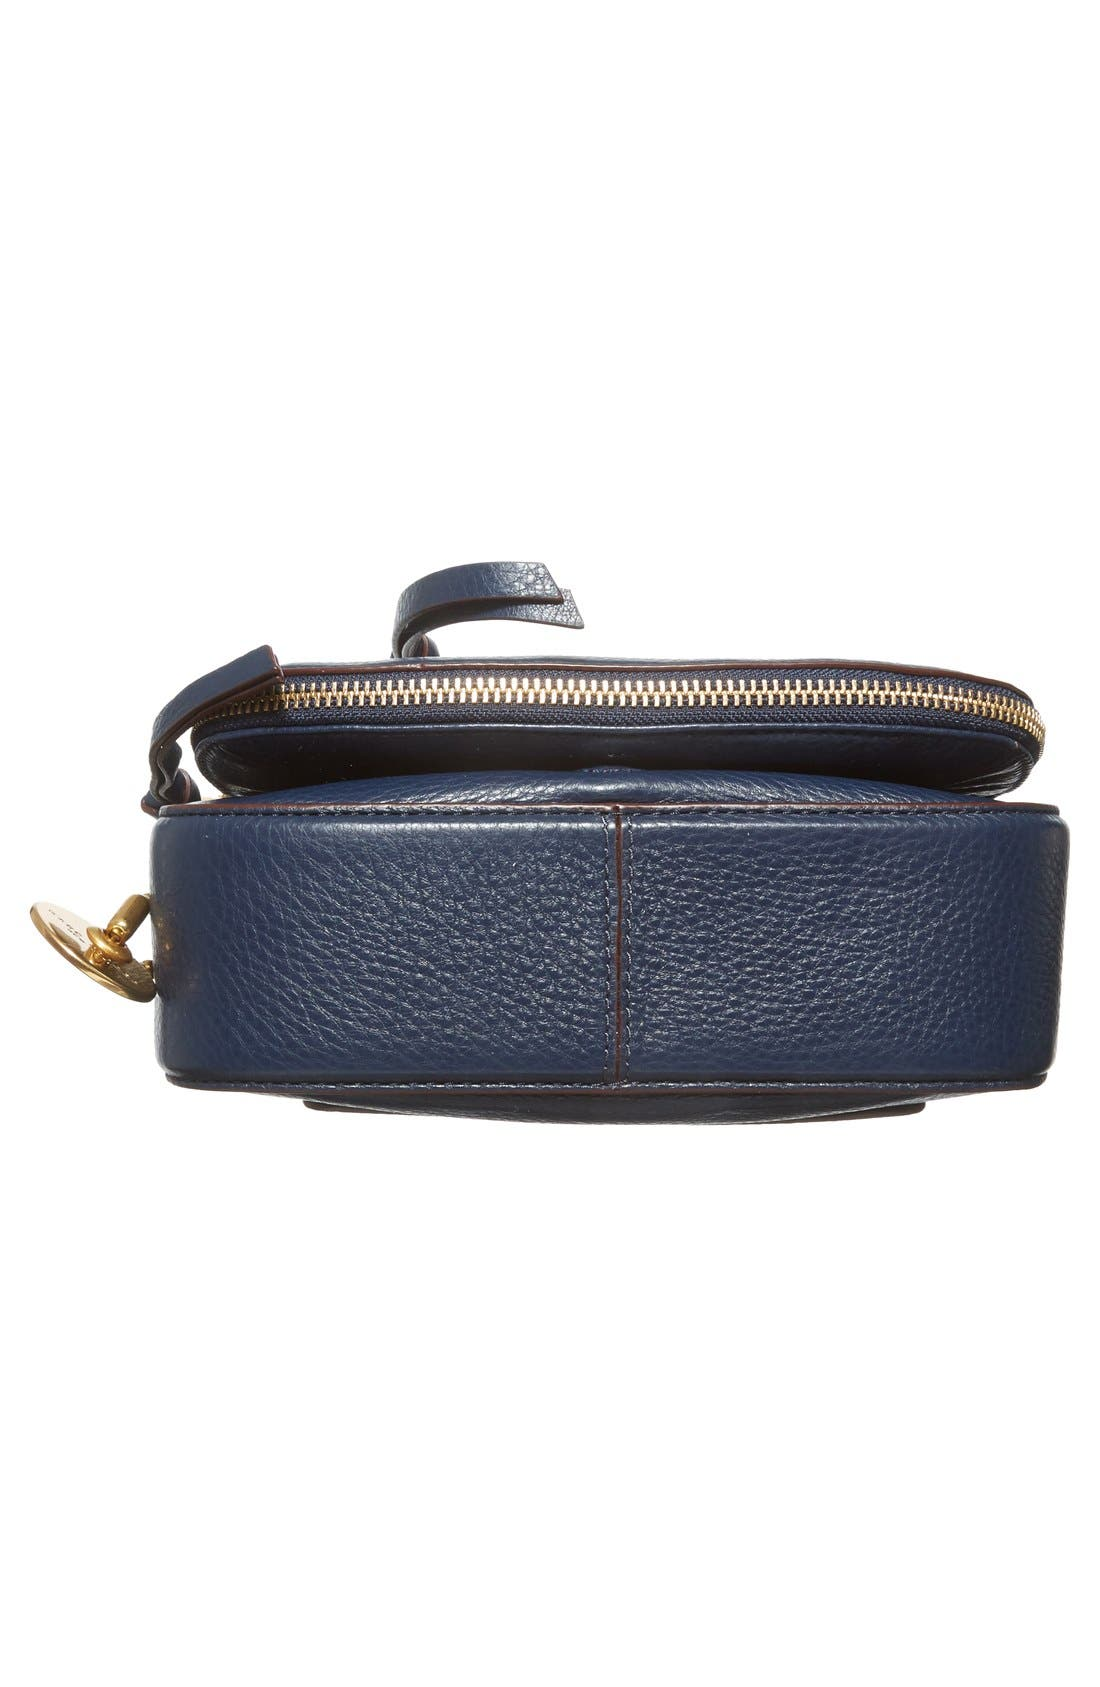 Small Recruit Nomad Pebbled Leather Crossbody Bag,                             Alternate thumbnail 74, color,